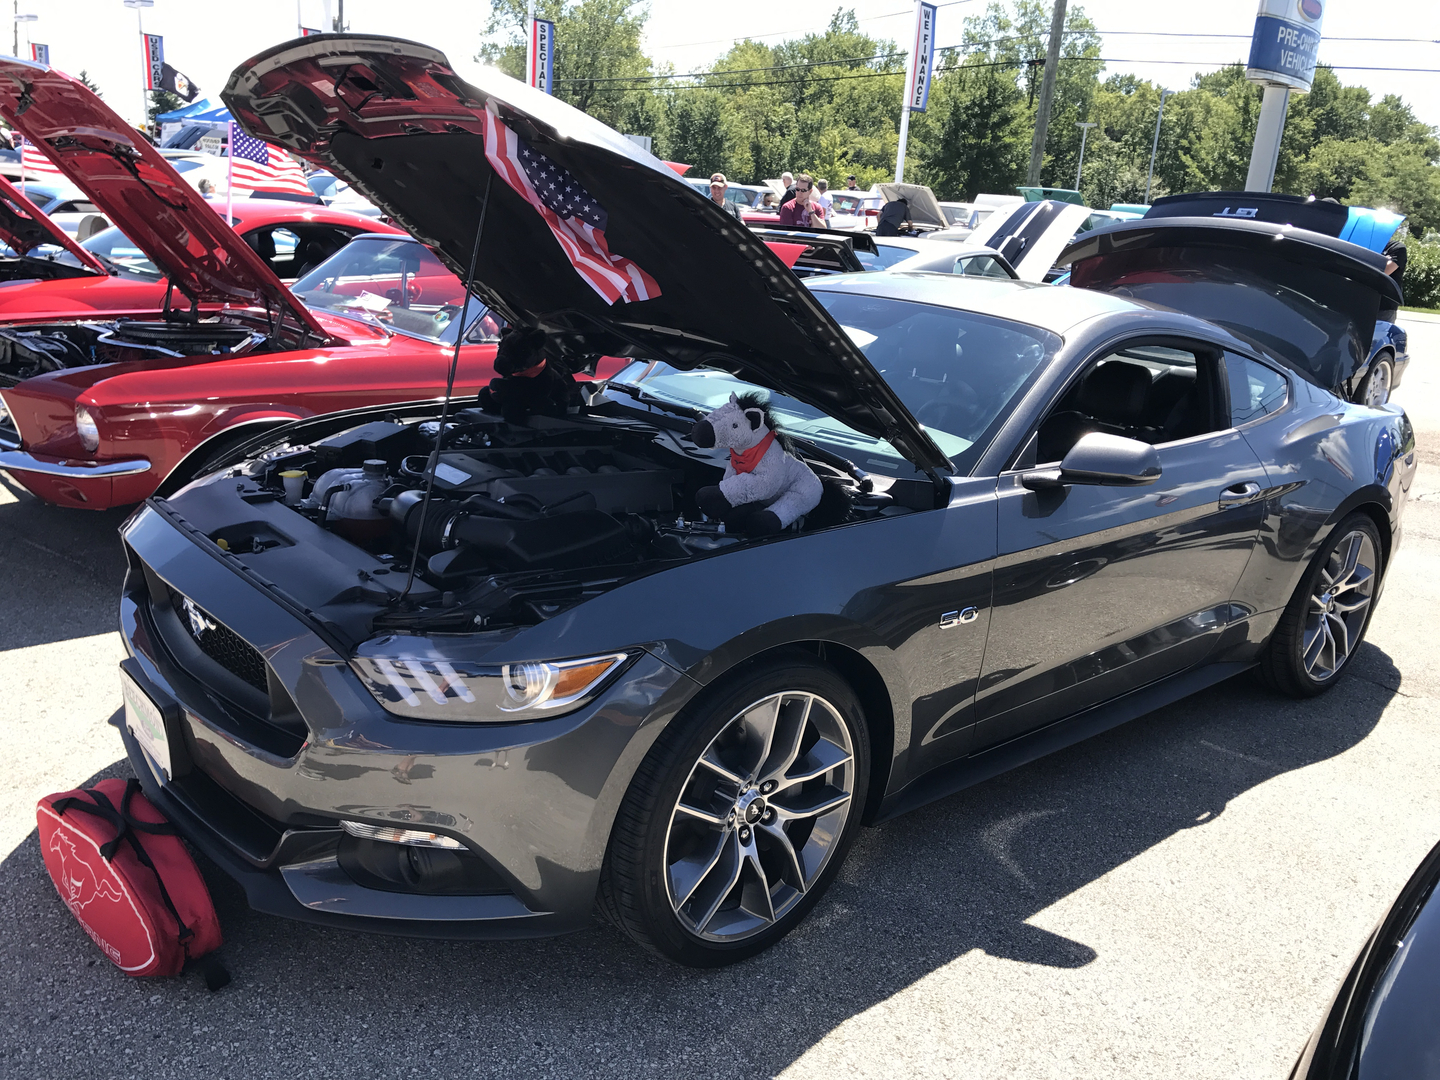 Mustang Club Of Indianapolis Car Show - Car show in indianapolis this weekend